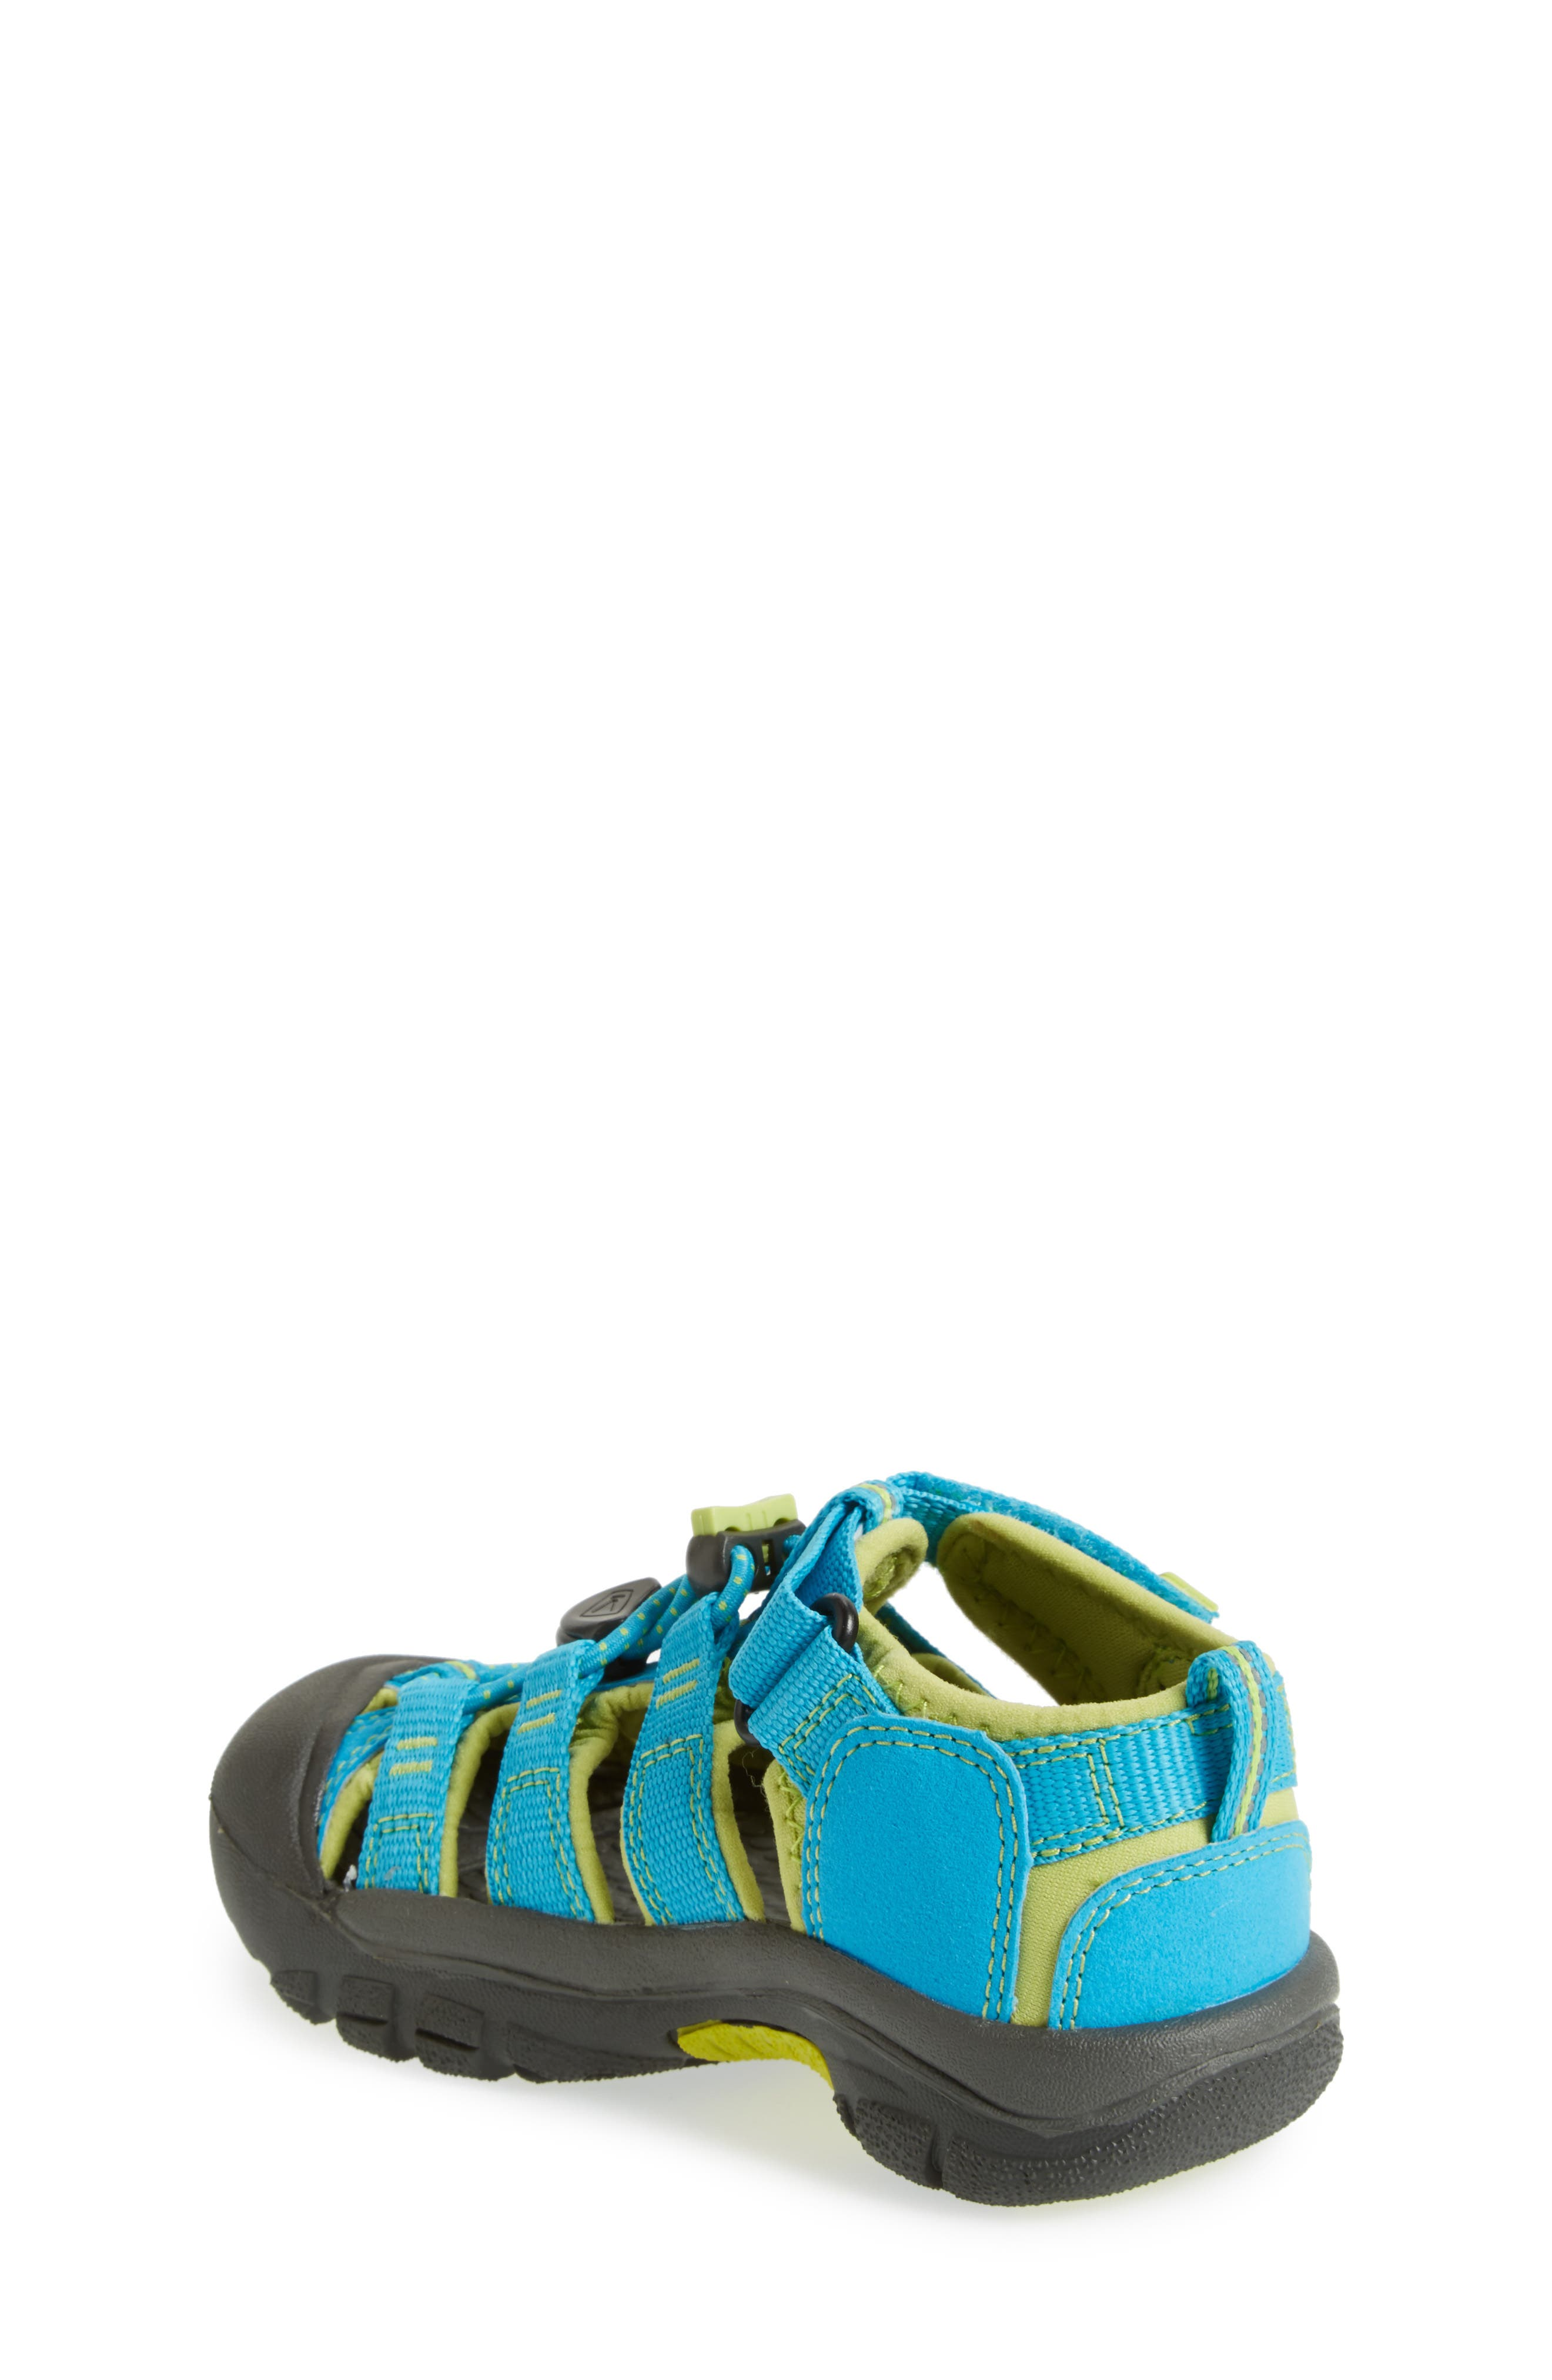 ,                             'Newport H2' Water Friendly Sandal,                             Alternate thumbnail 361, color,                             416